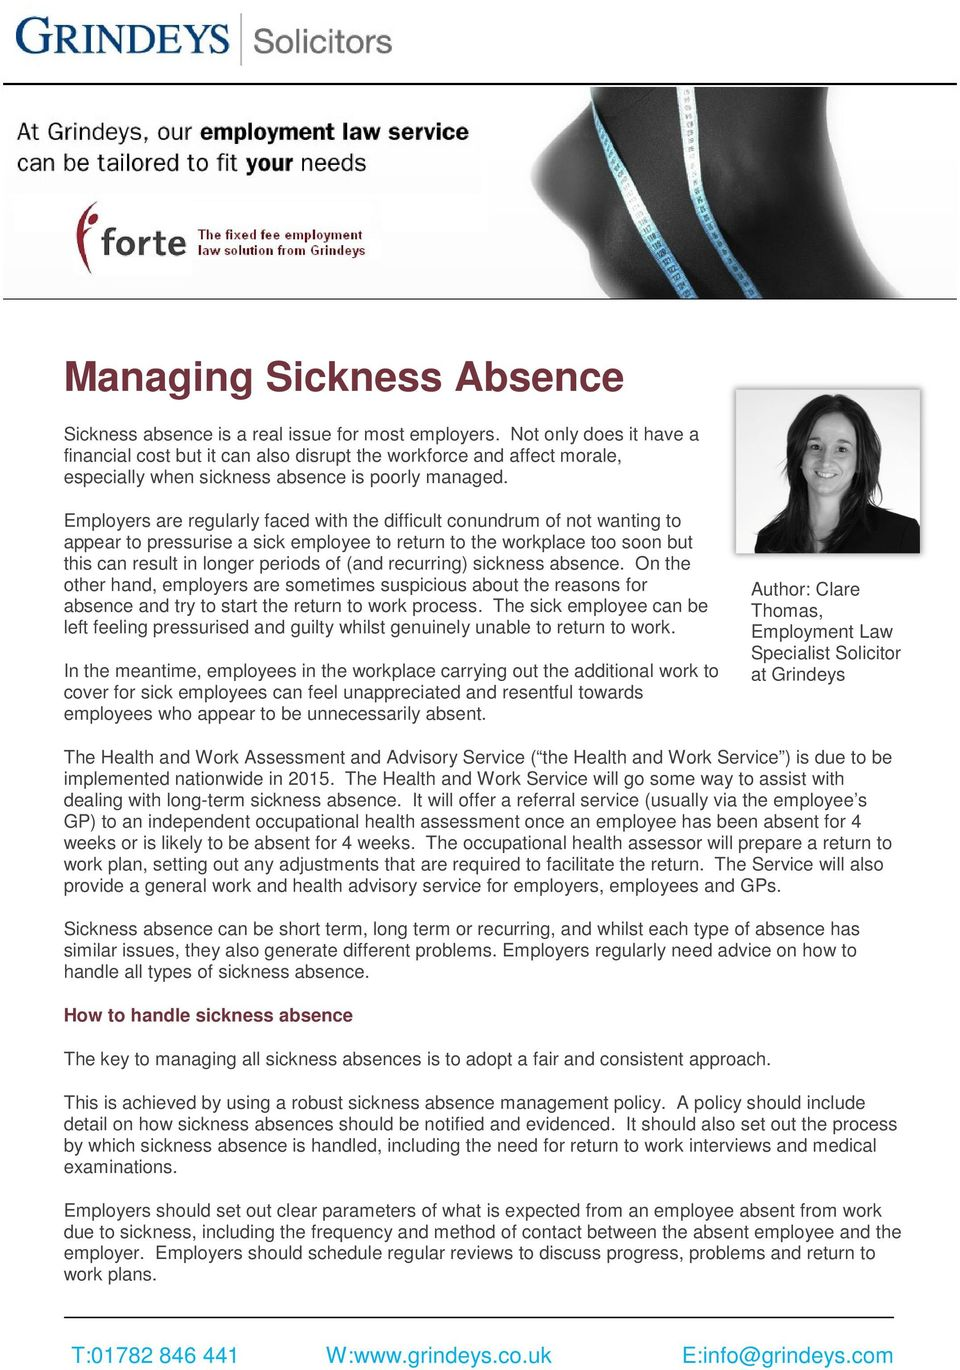 Employers are regularly faced with the difficult conundrum of not wanting to appear to pressurise a sick employee to return to the workplace too soon but this can result in longer periods of (and